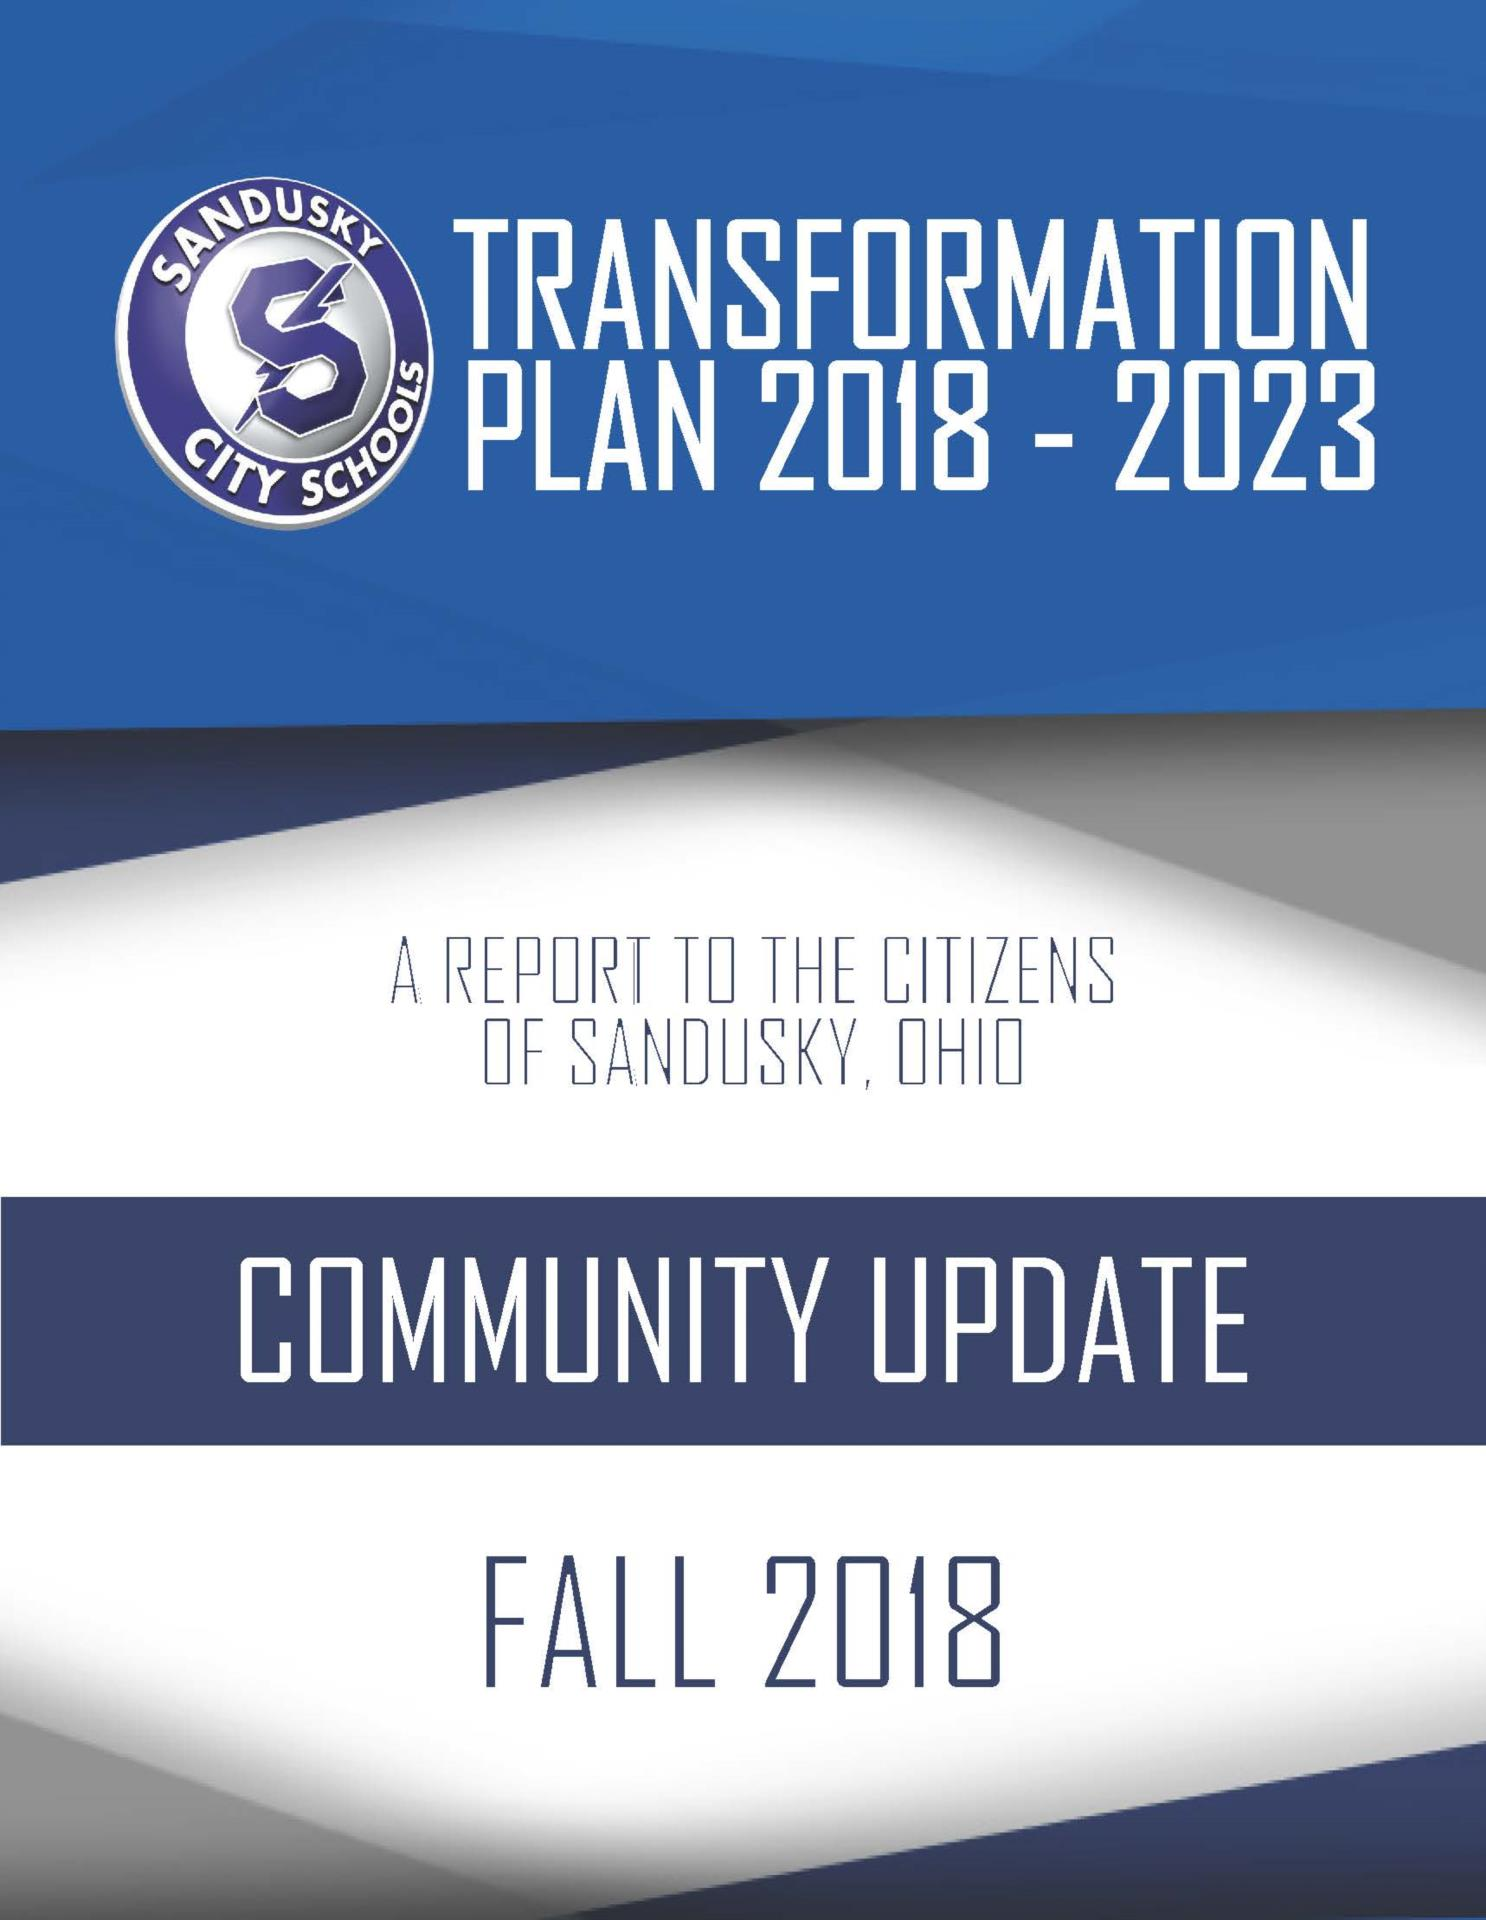 2018 Fall Transformation Plan Update